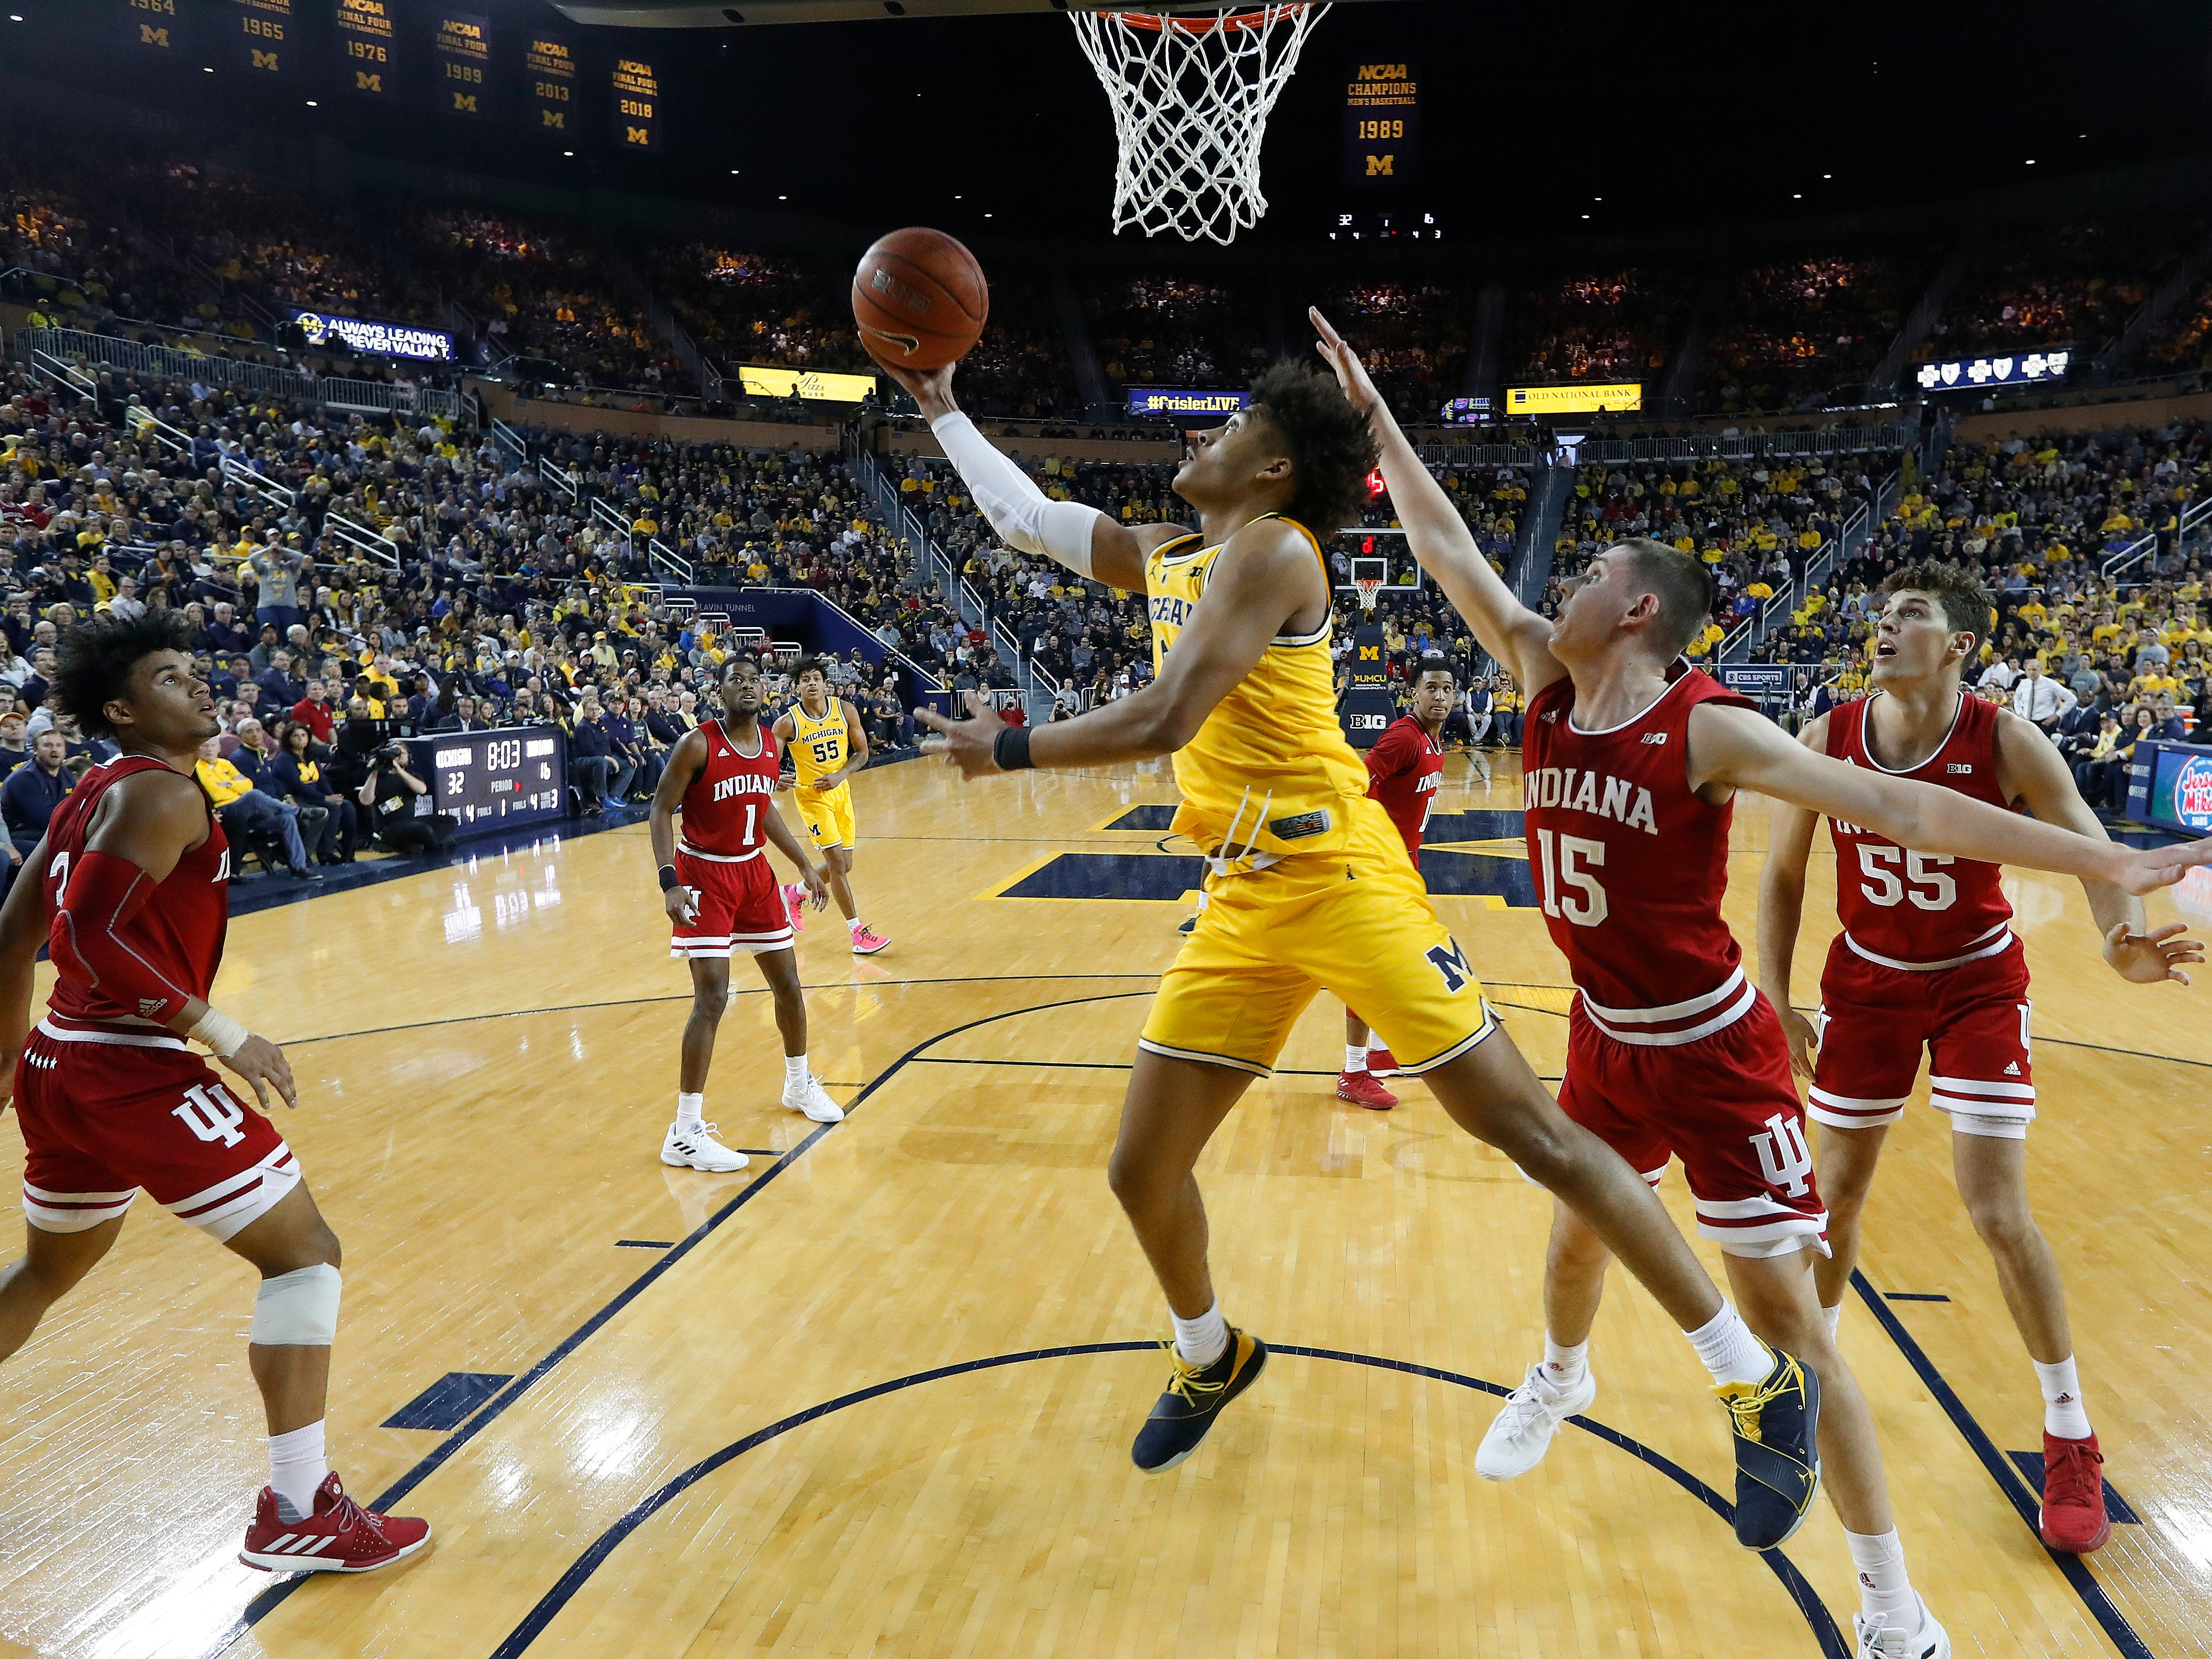 Michigan guard Jordan Poole (2) drives against Indiana in the first half of an NCAA college basketball game in Ann Arbor, Mich., Sunday, Jan. 6, 2019.